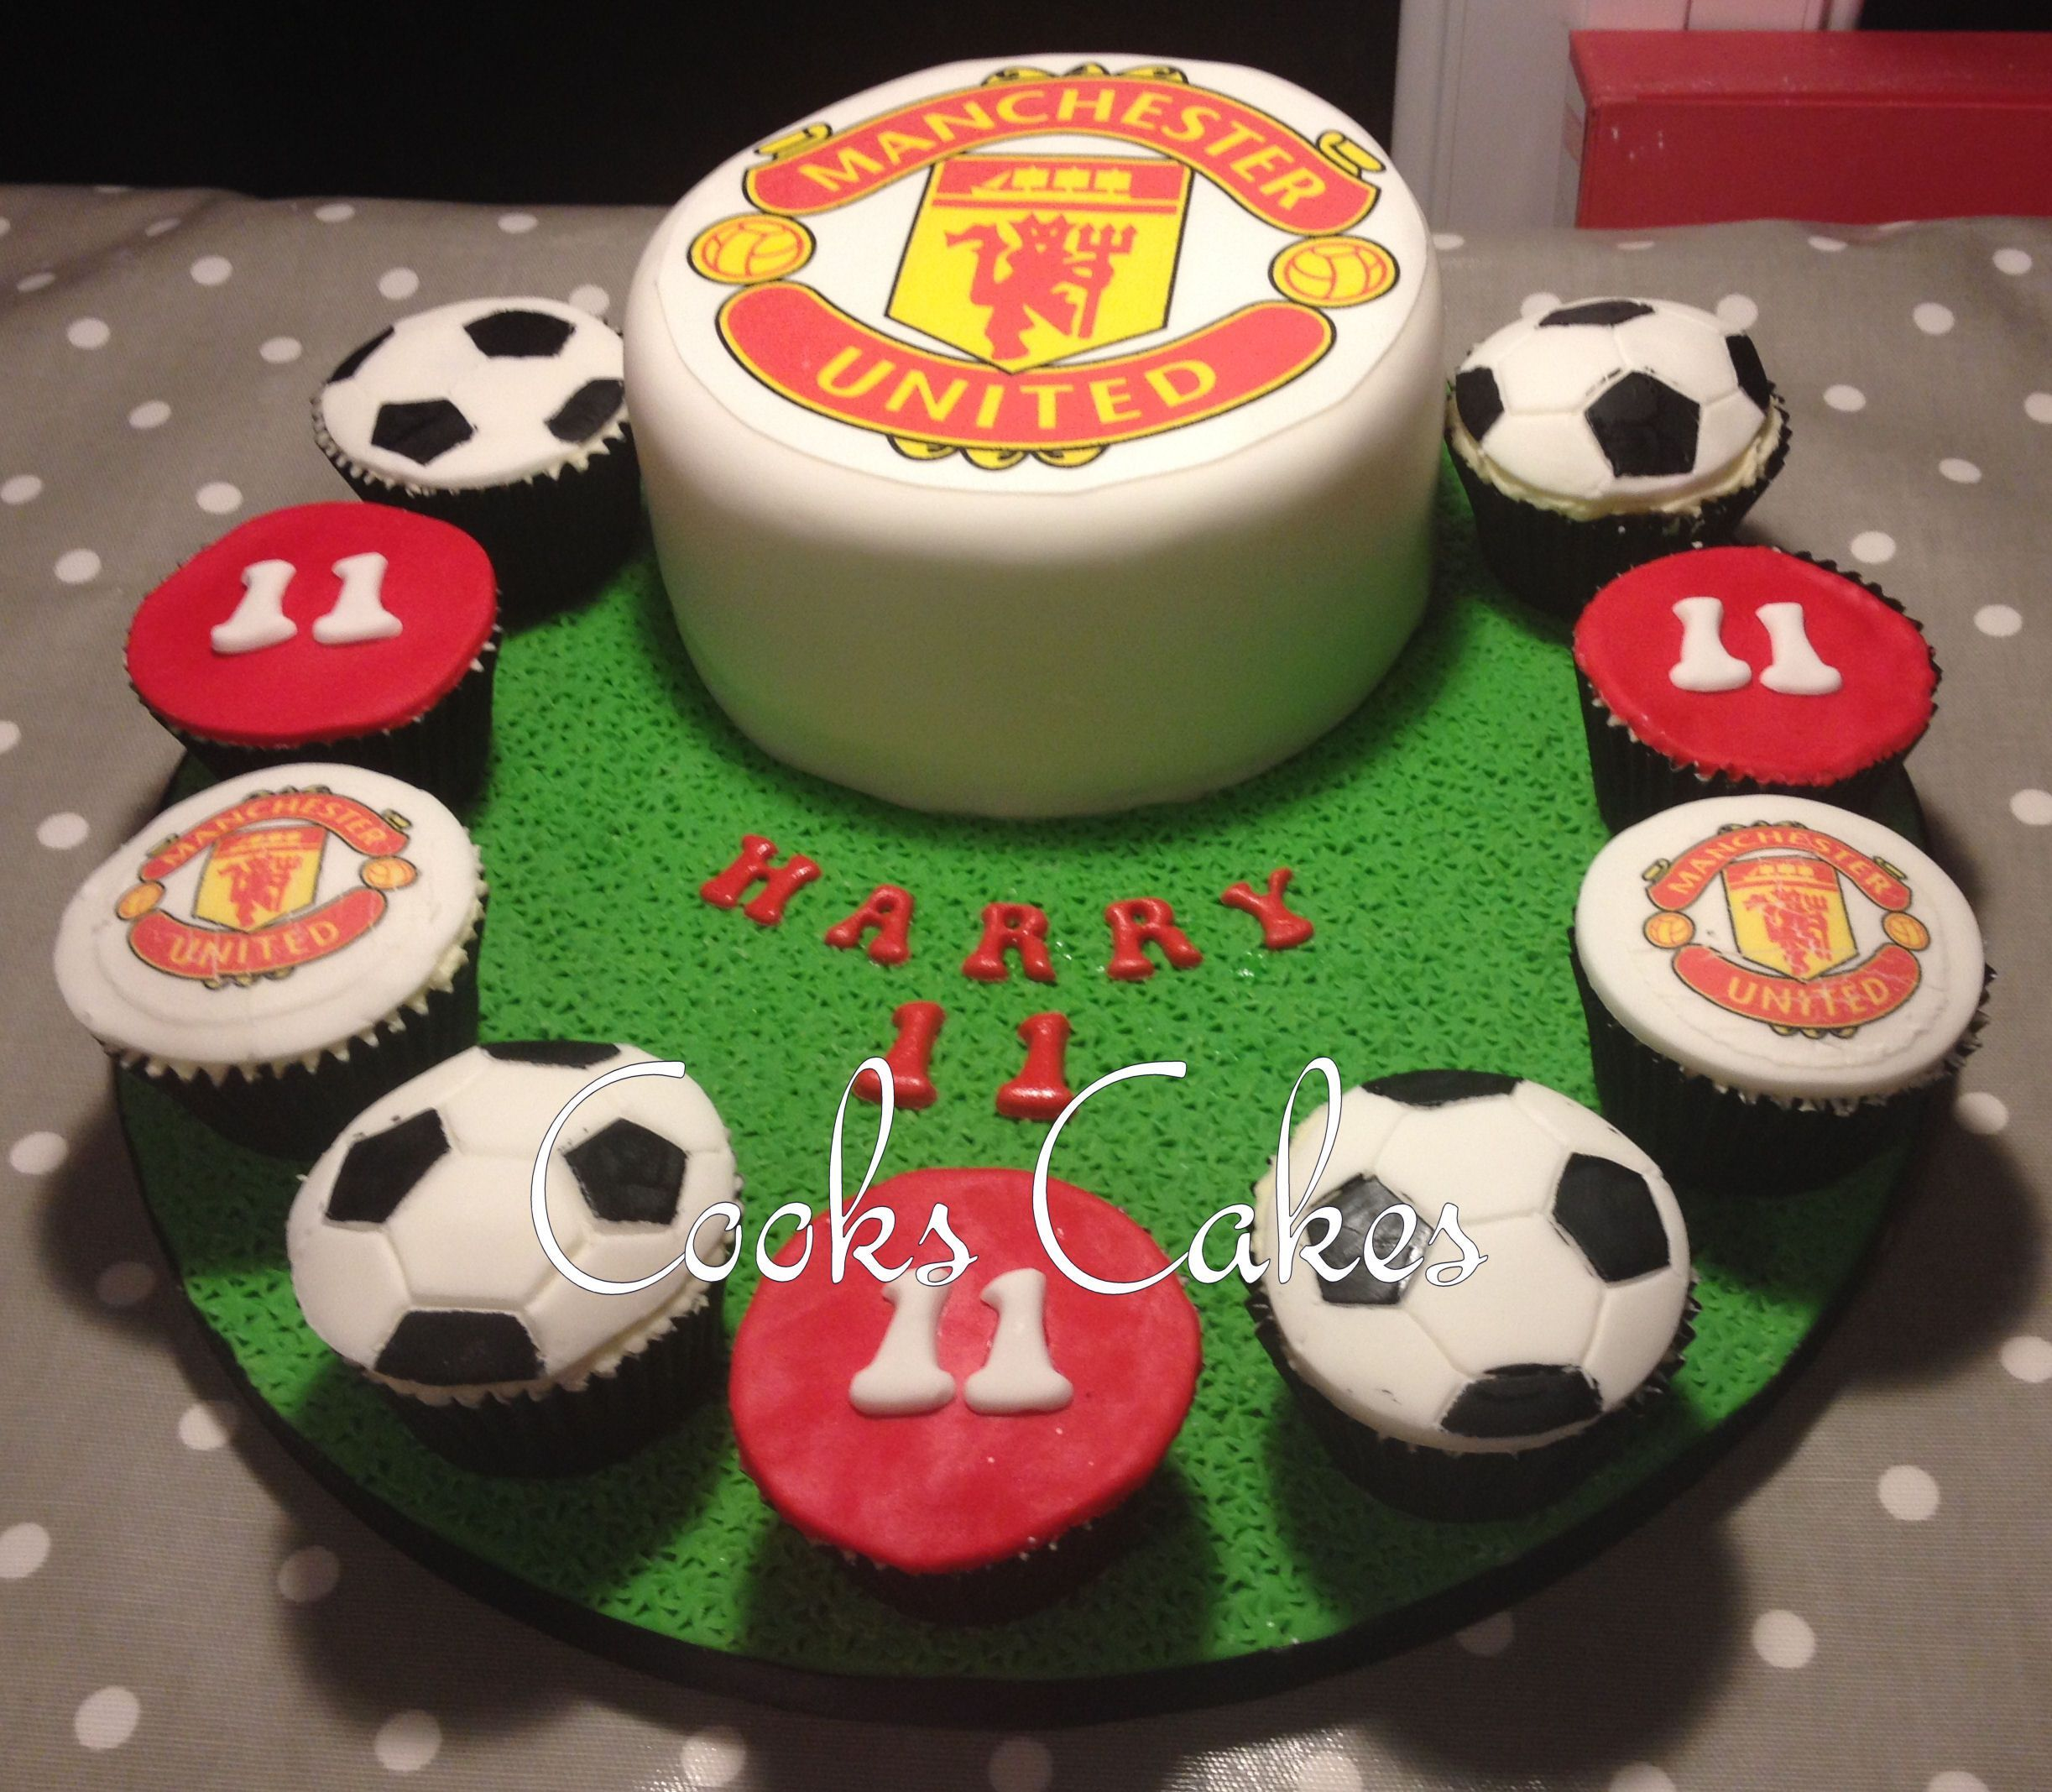 Manchester United Cake Boys Cake Football Cake Man Utd Cake In 2020 Football Cake Manchester United Cake Cake